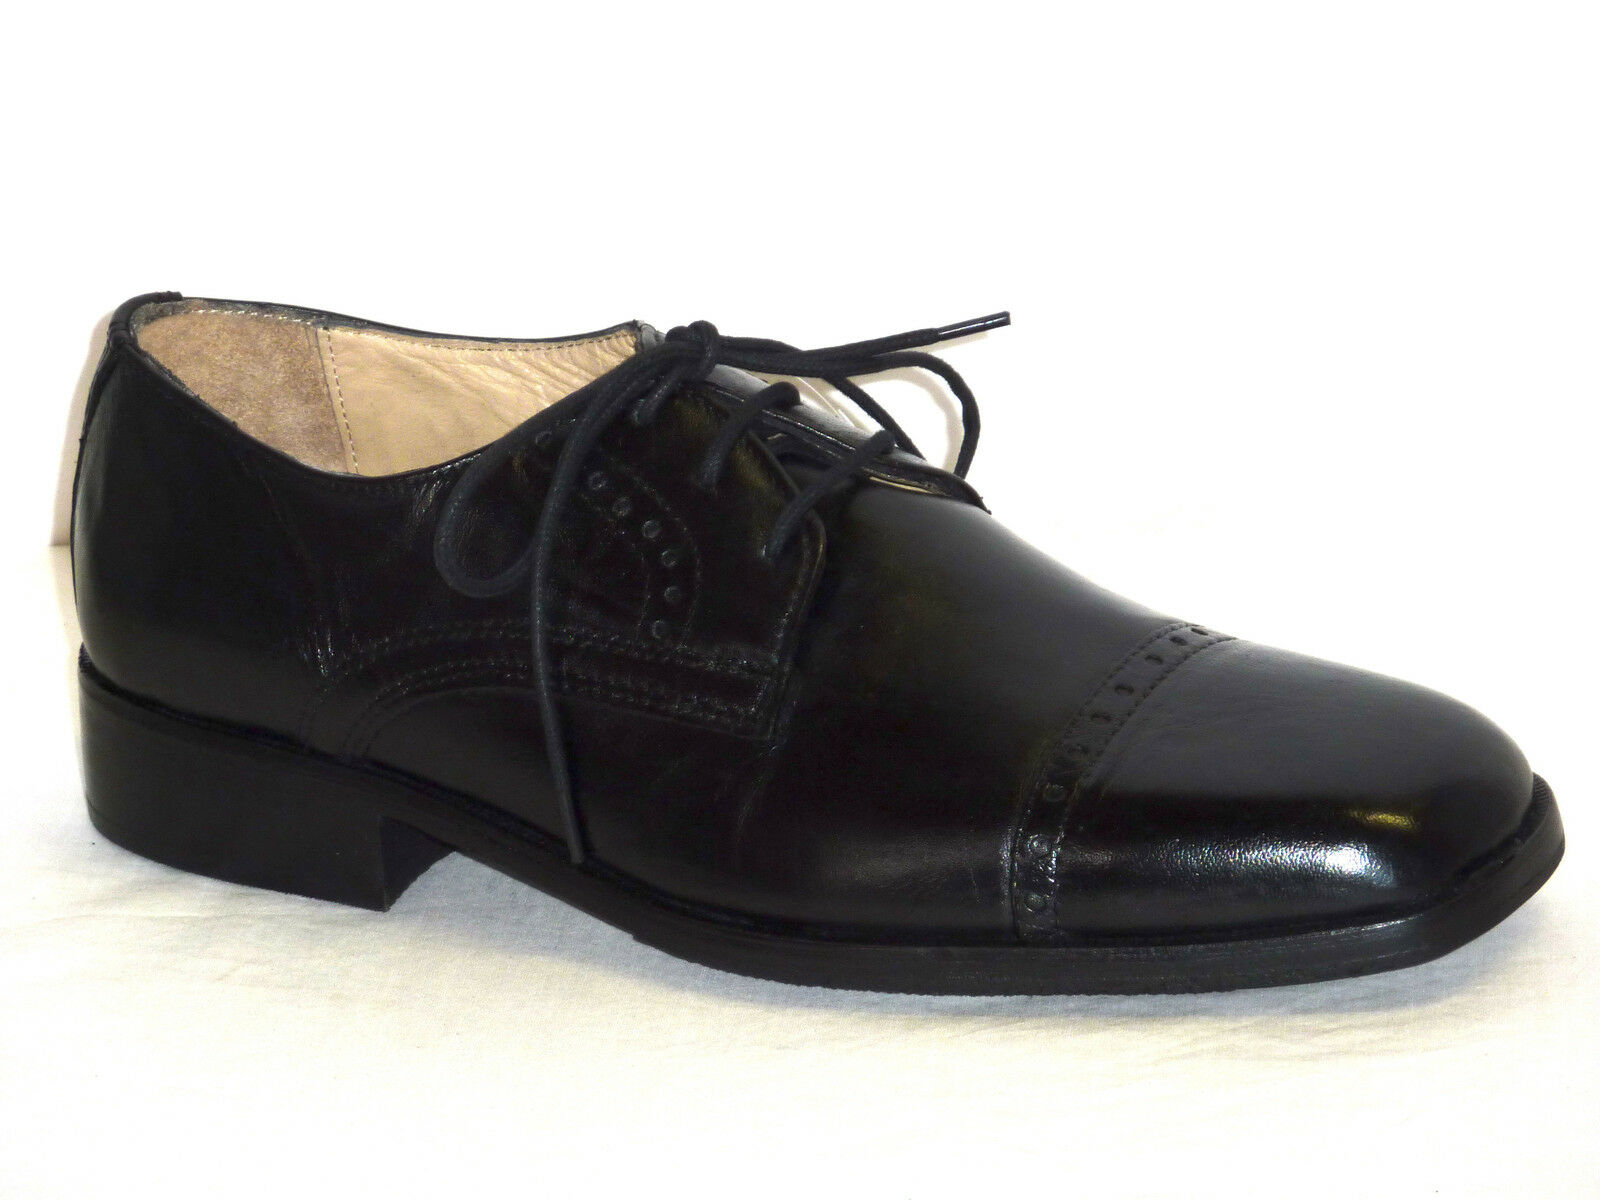 shoes men ALLACCIATE PELLE black ELEGANTI MODA COMODA n. 41